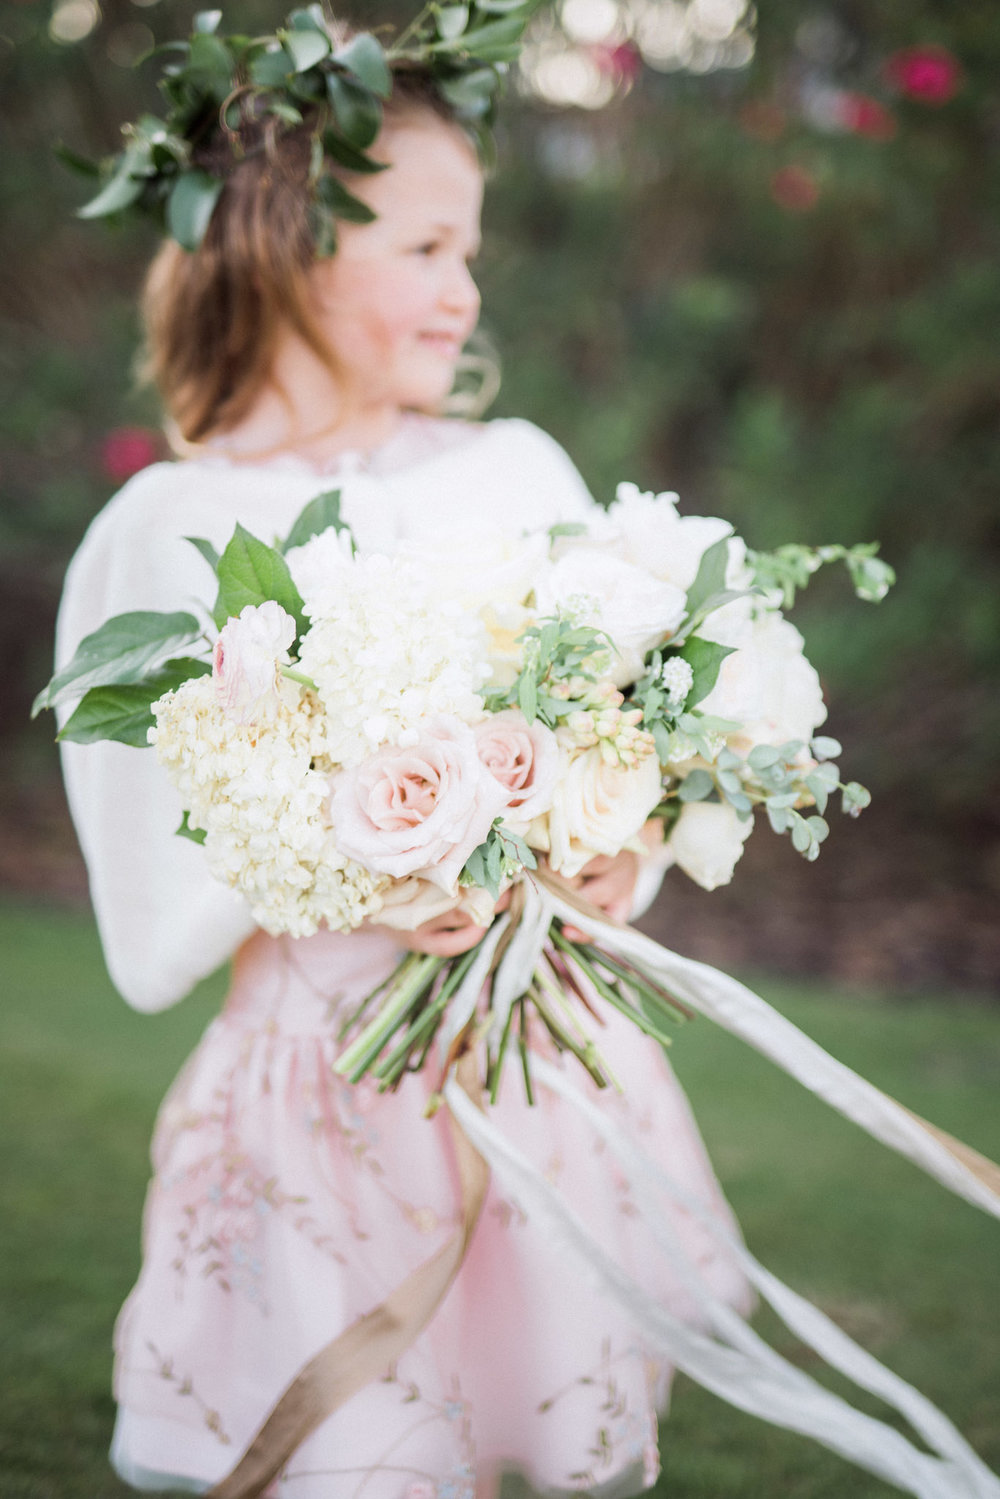 Flowergirl holding gorgeous white and blush garden style bouquet with roses and eucalyptus